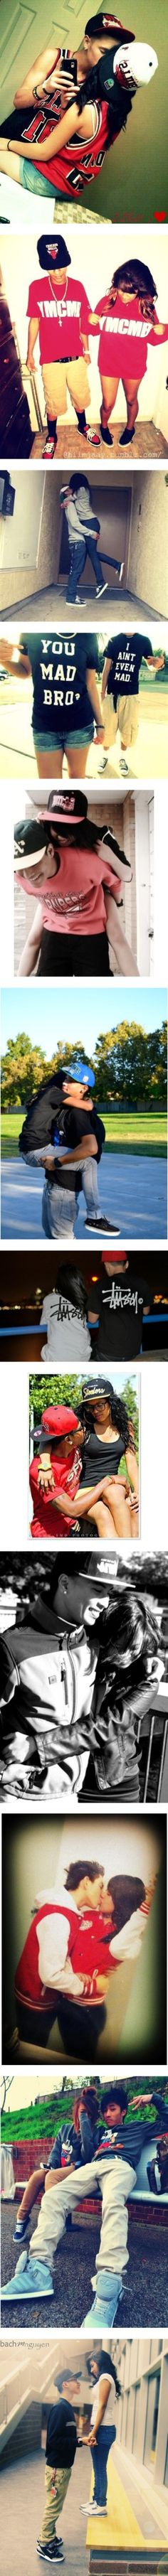 """""""Cute af couples :)"""" by latina-swagg ❤ liked on Polyvore"""